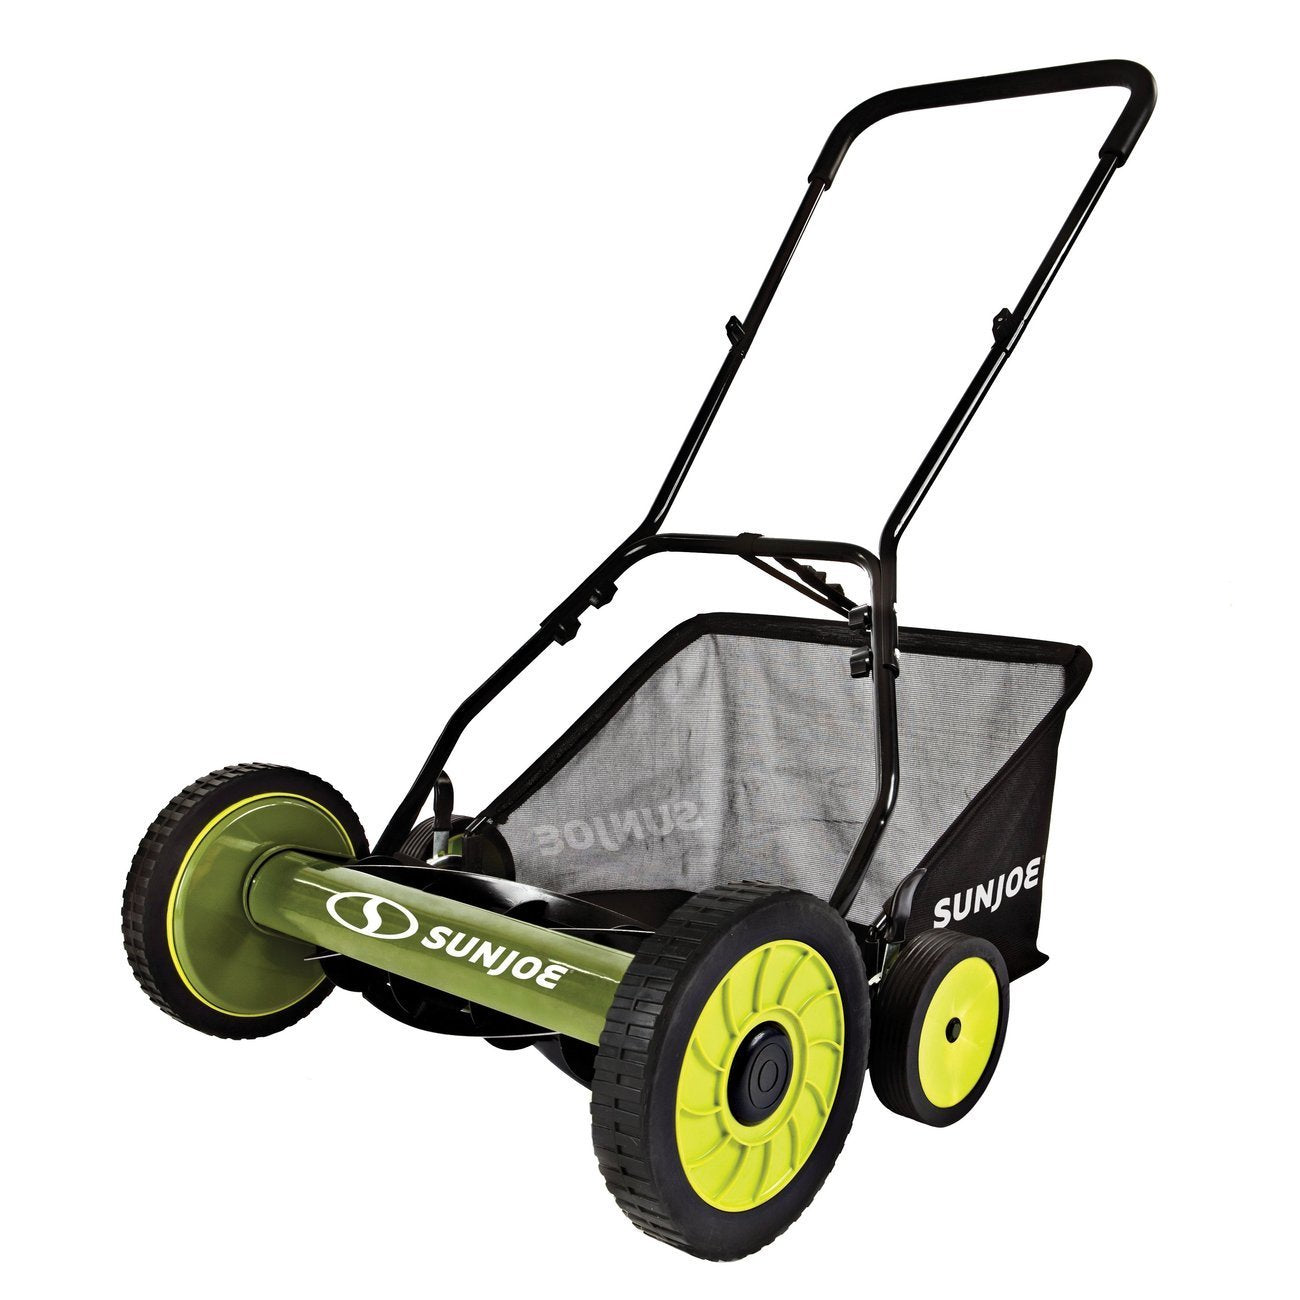 Sun Joe 20 in. Manual Reel Mower with Grass Catcher